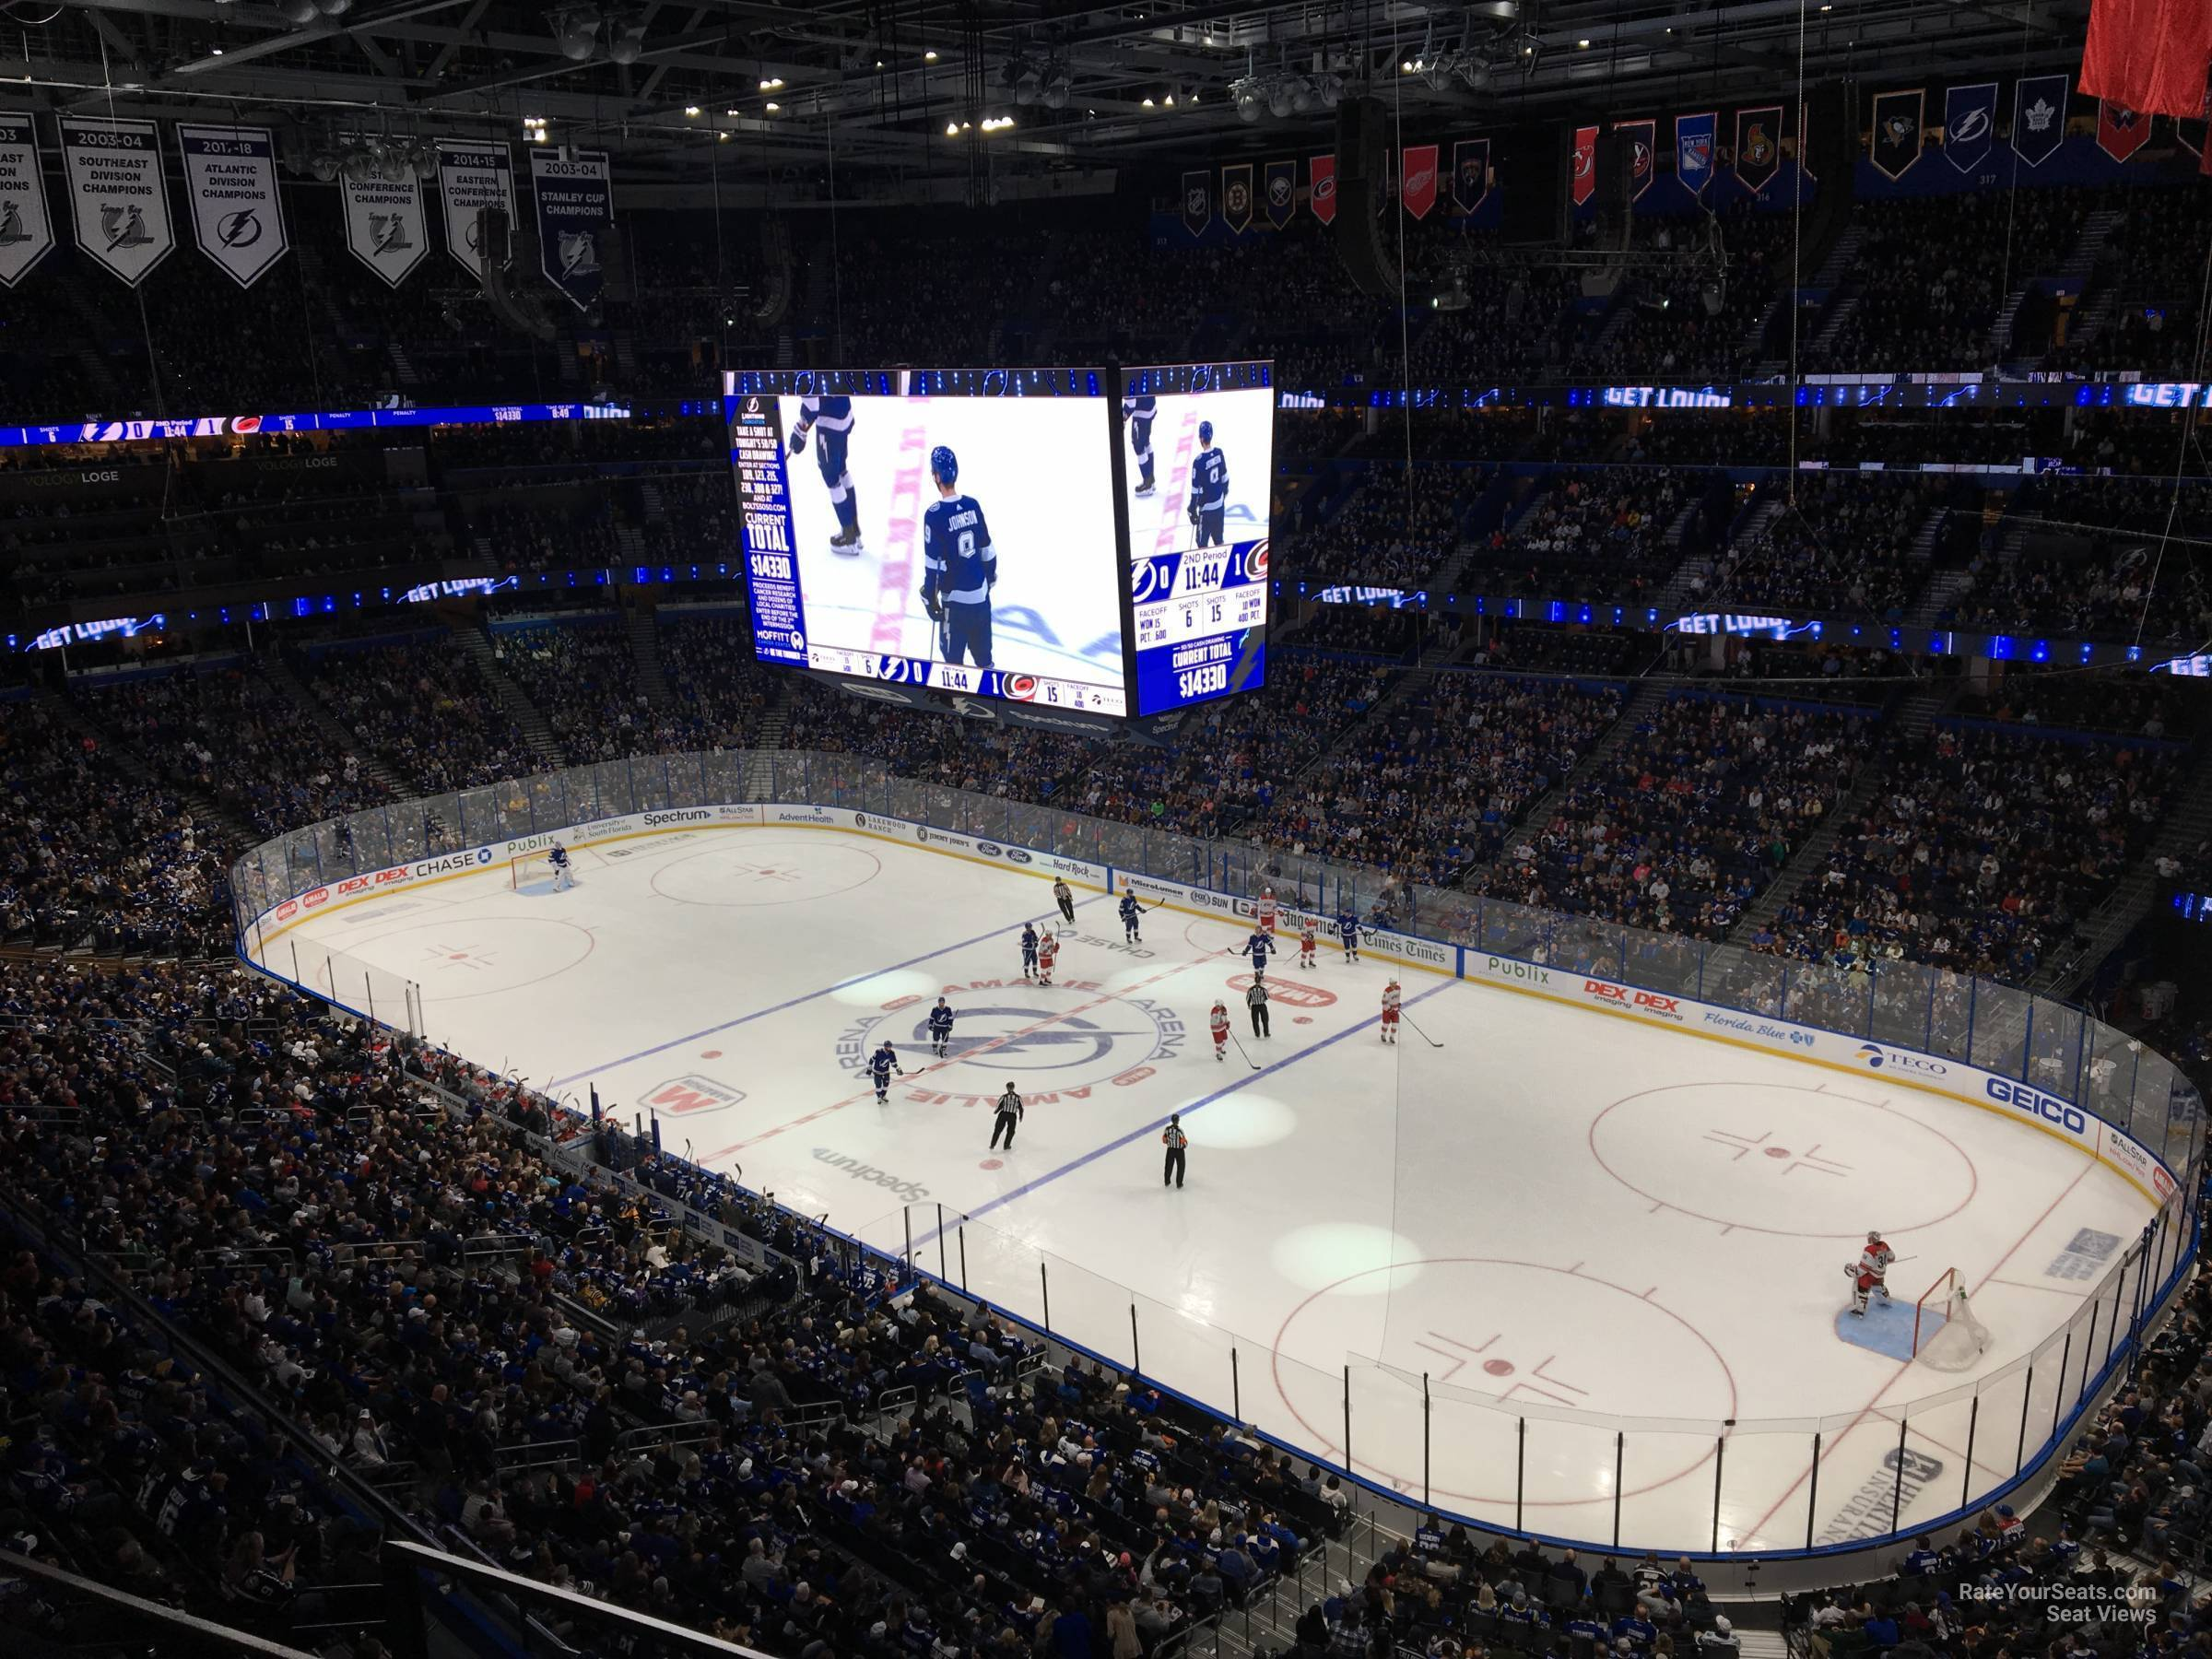 Section 327 seat view